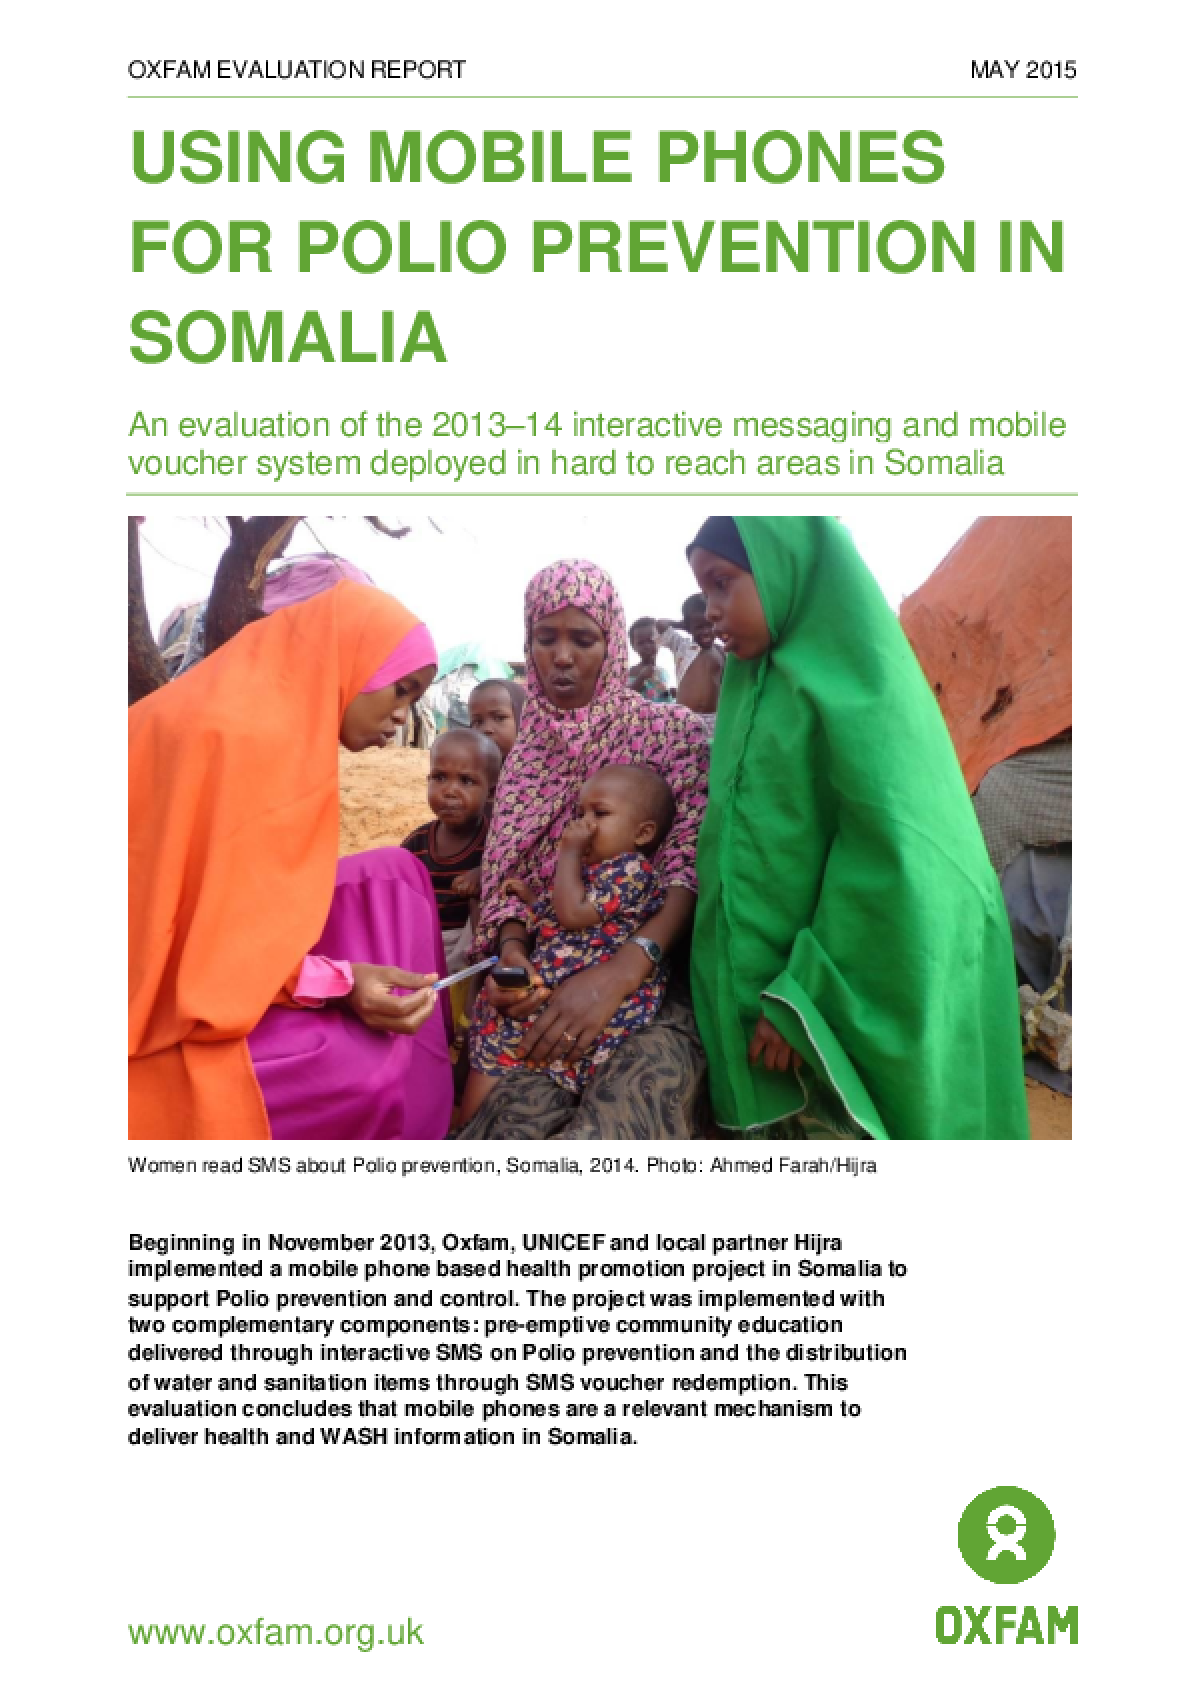 Using Mobile Phones for Polio Prevention in Somalia: An evaluation of the 2013-14 interactive messaging and mobile voucher system deployed in hard to reach areas in Somalia